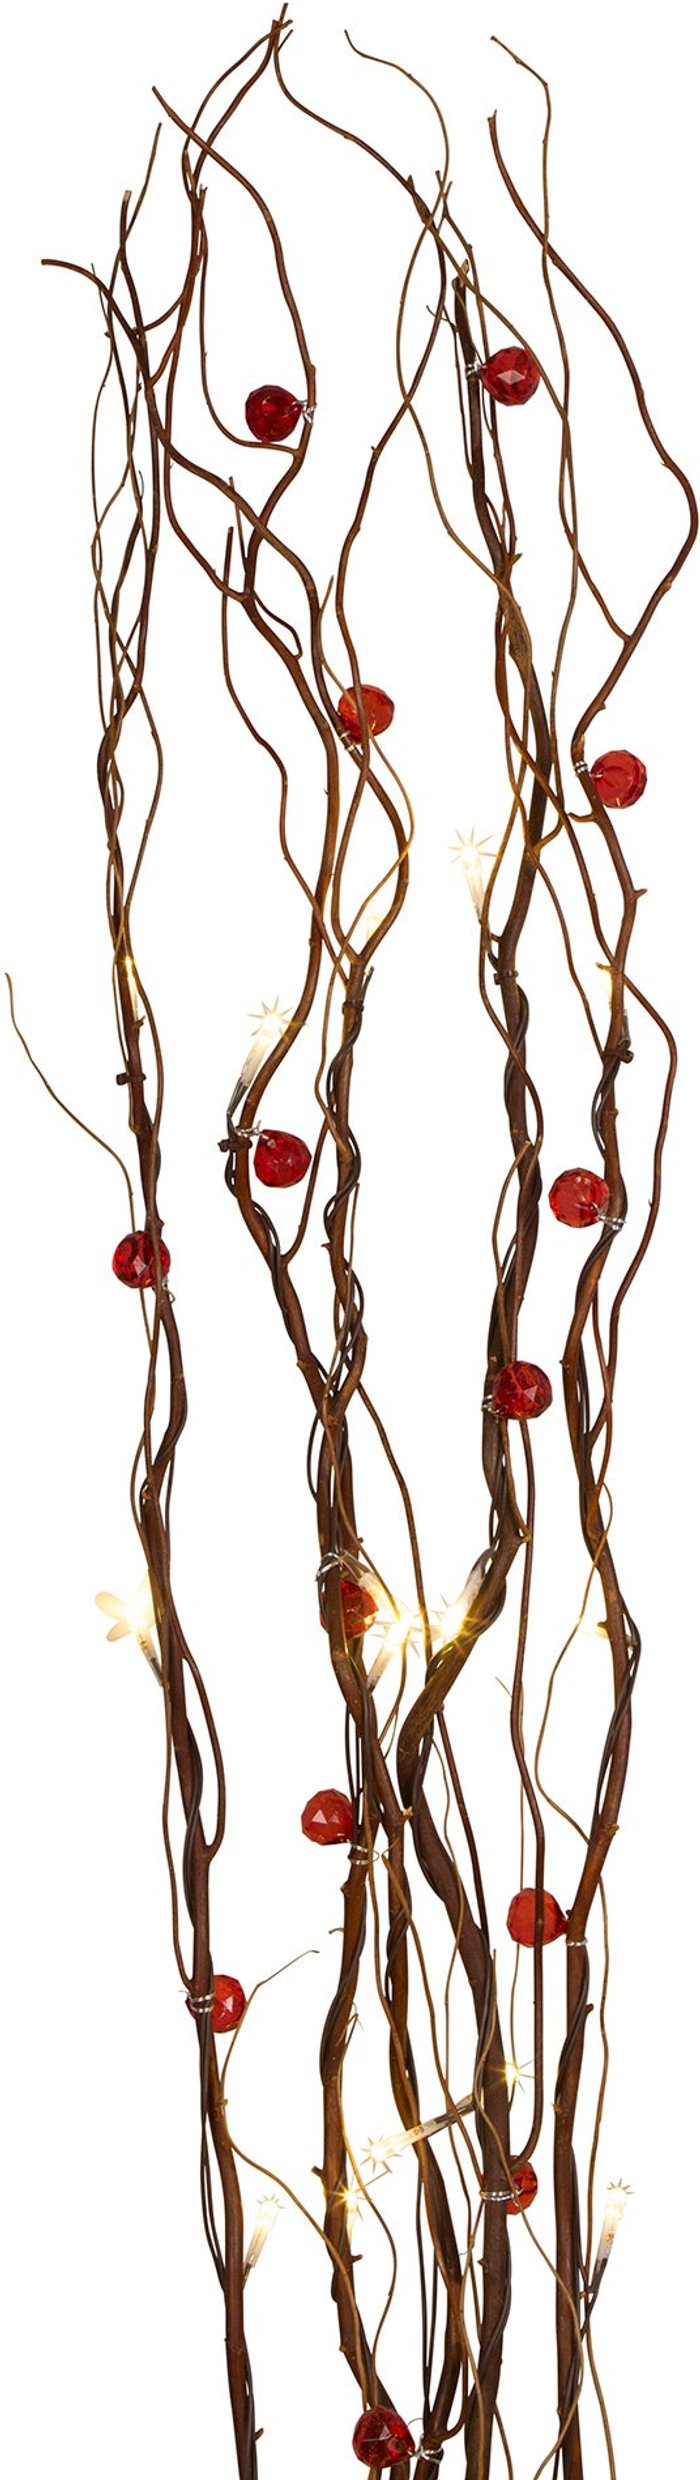 Dunelm Red Beads Brown Twig Lights Brown